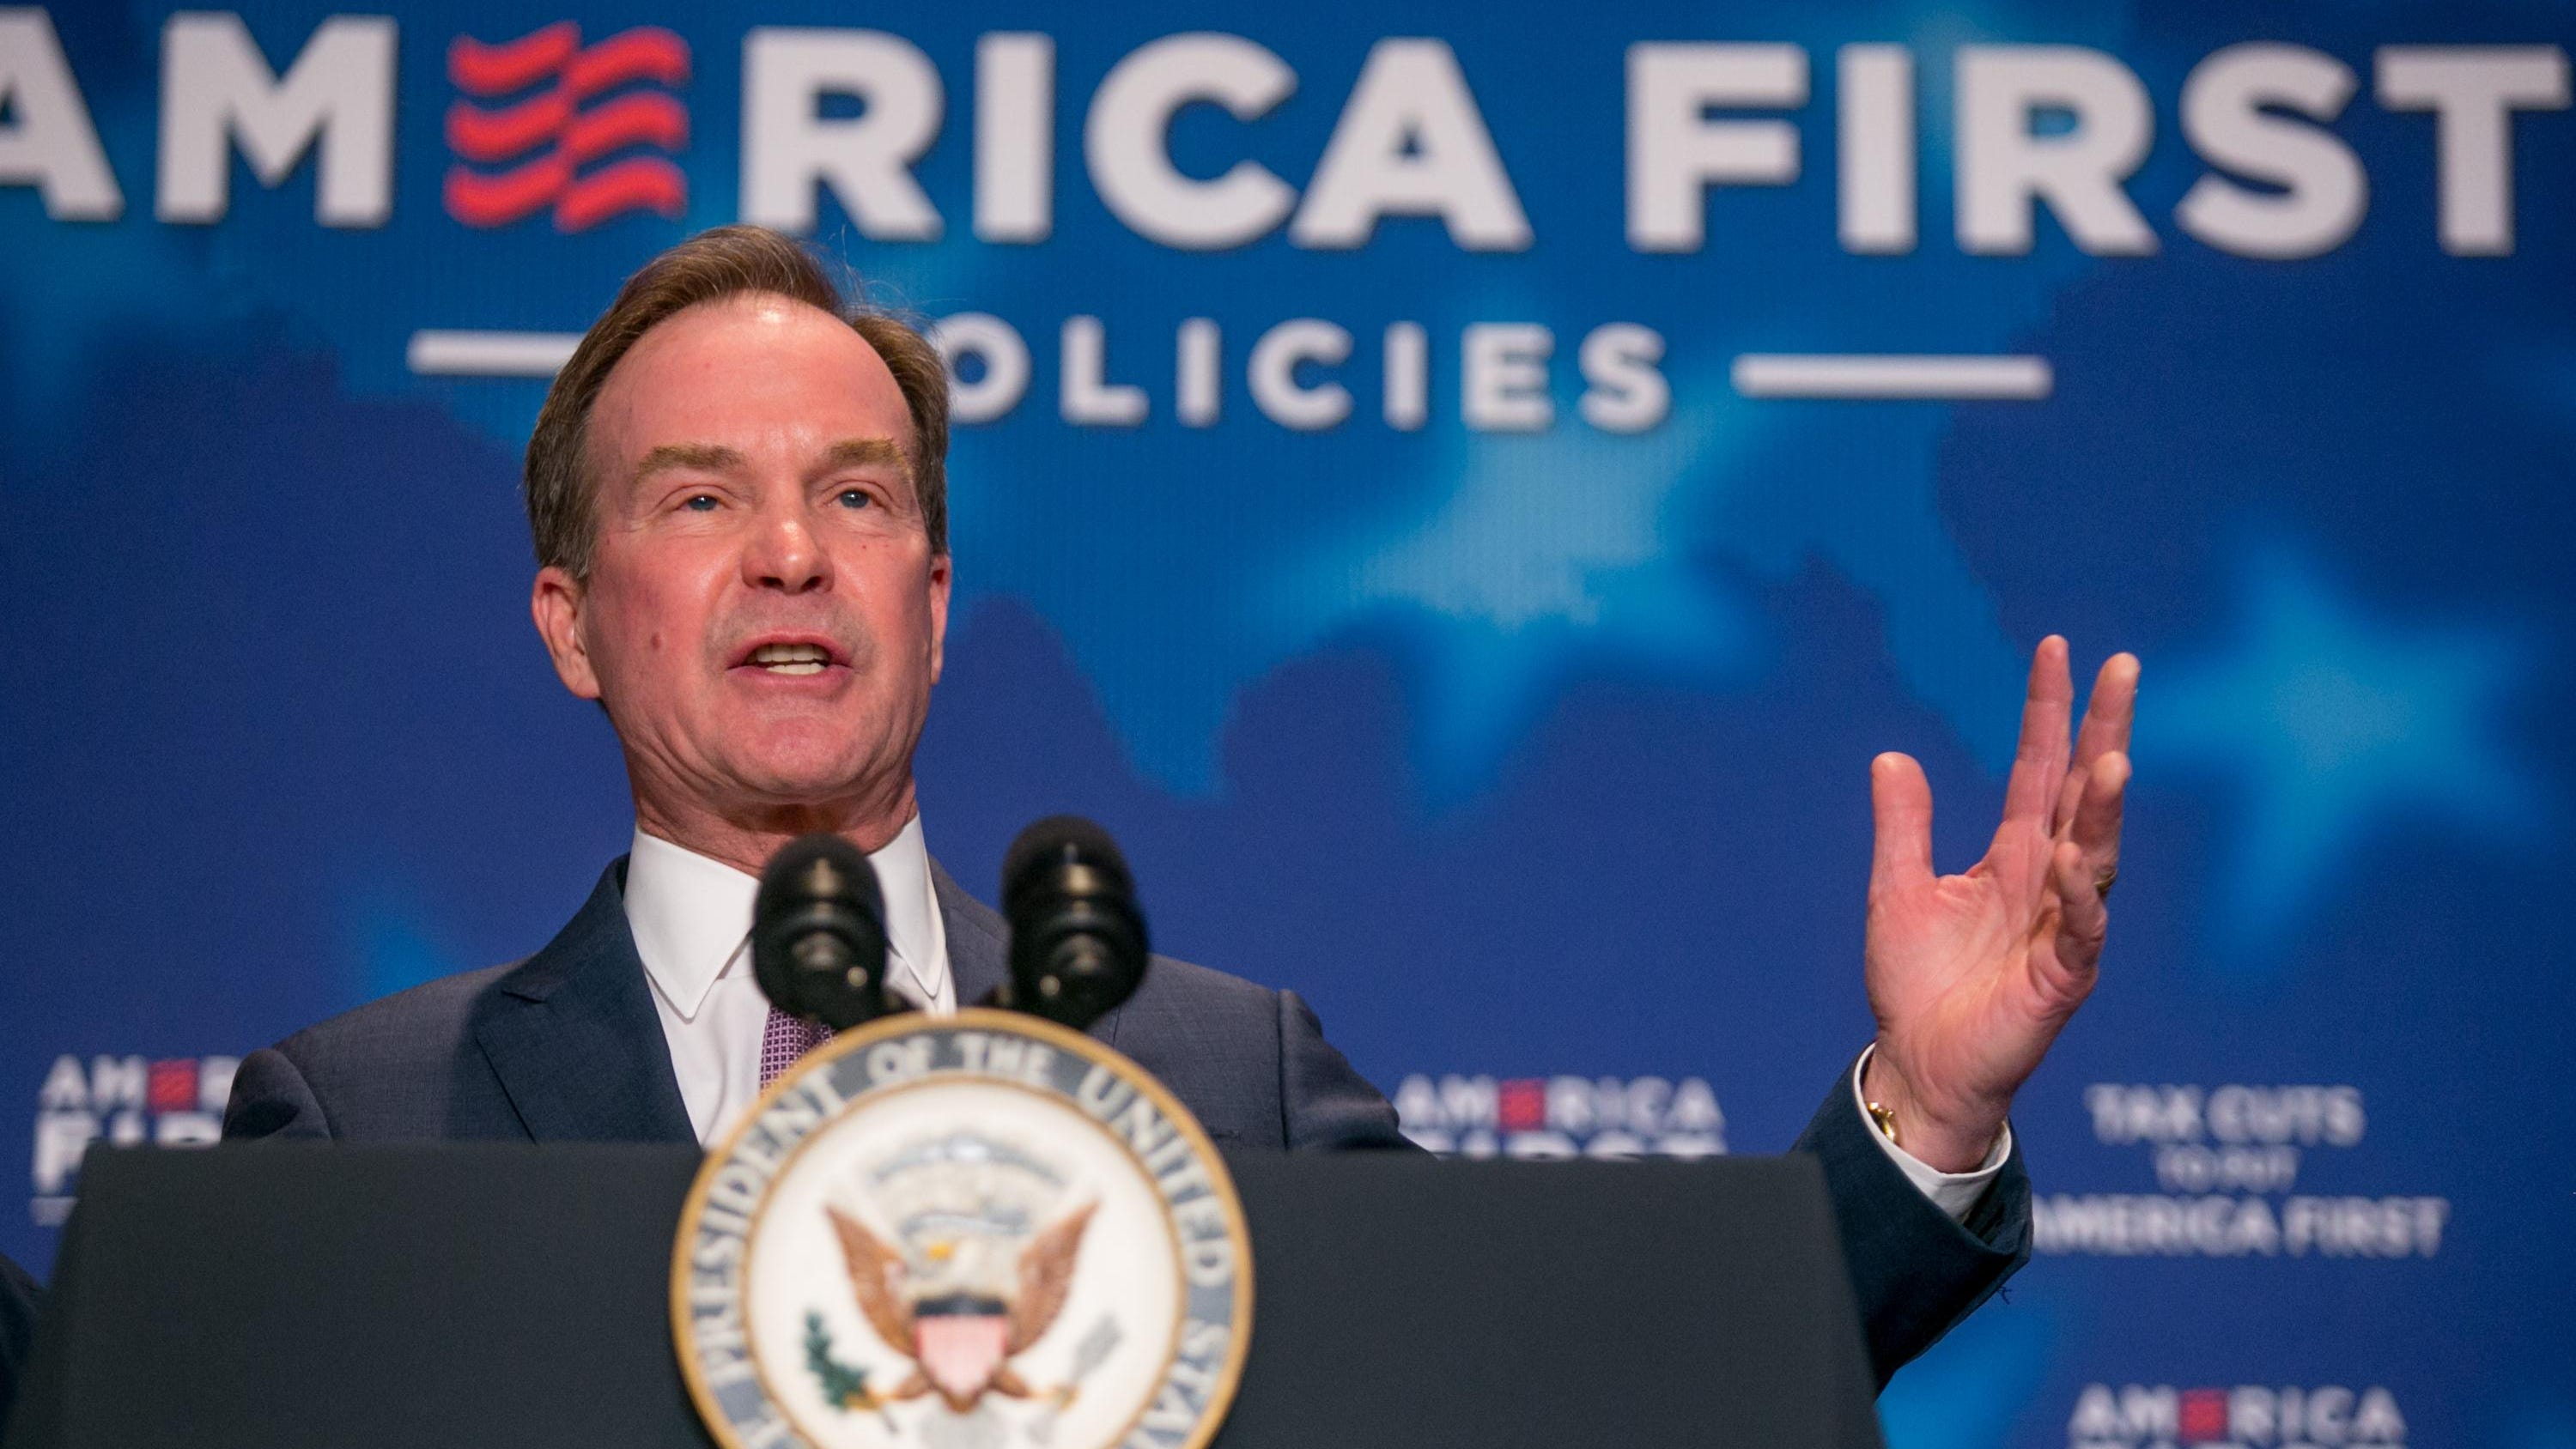 detroitnews.com - Jonathan Oosting, The Detroit News - Schuette: Michigan LGBT anti-discrimination policy 'invalid'